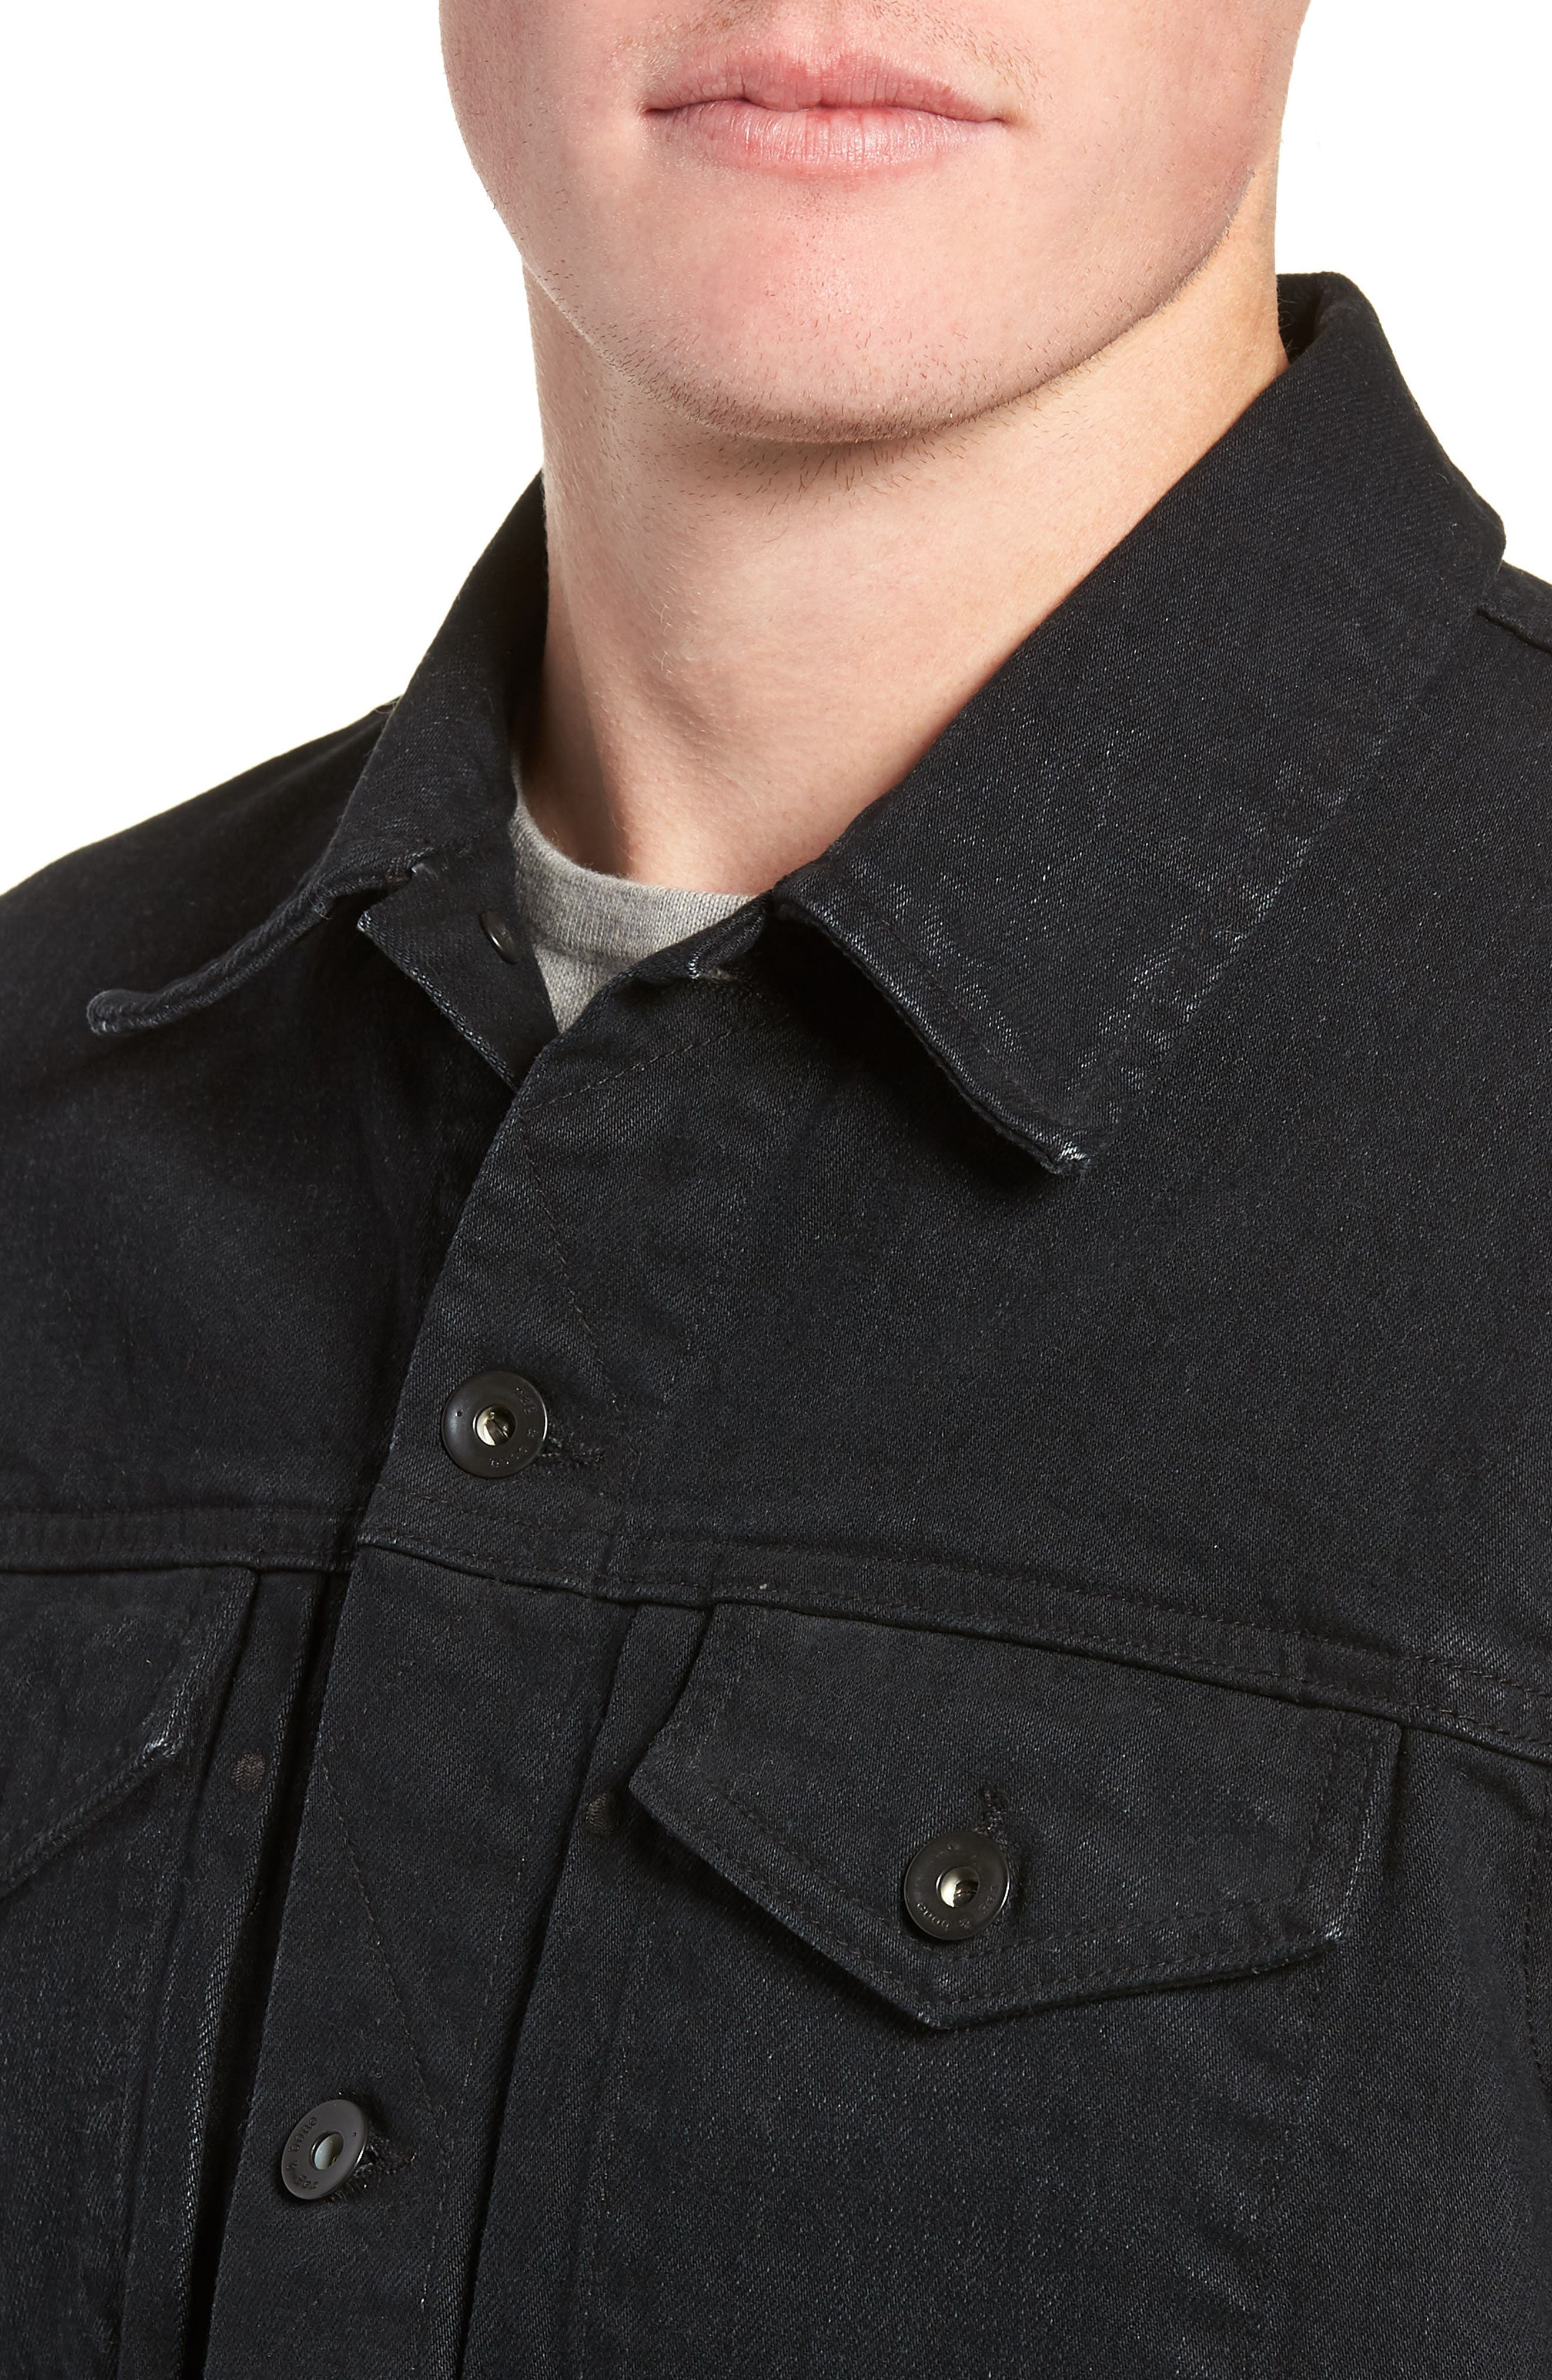 Definitive Jean Jacket,                             Alternate thumbnail 4, color,                             012